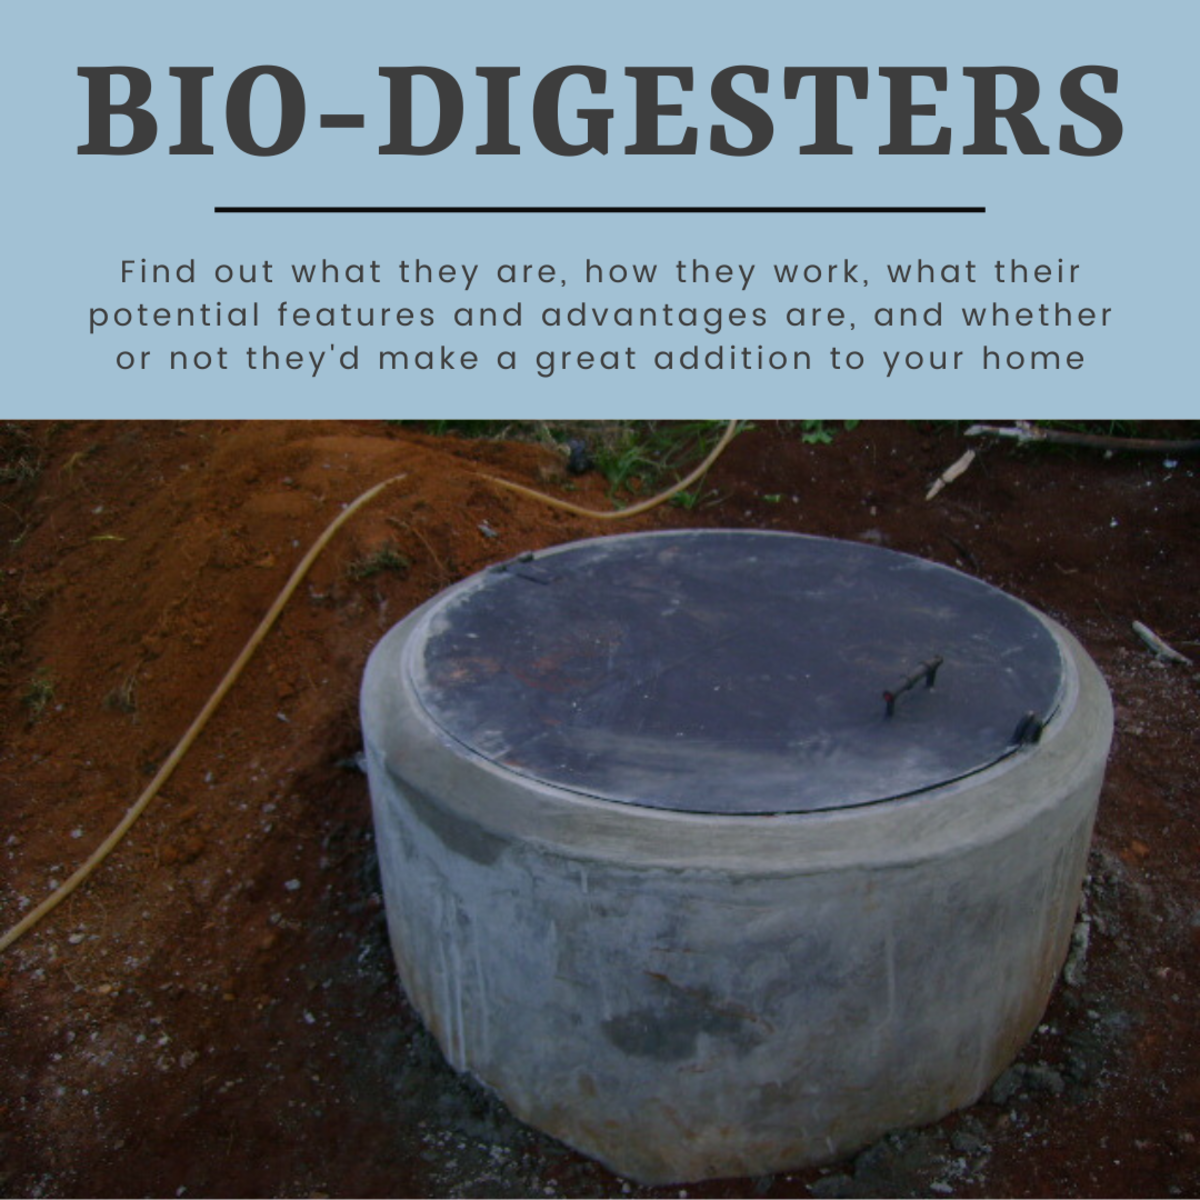 This article will break down everything you need about bio-digesters, including what they are, how they work, and the many features they can be made with.